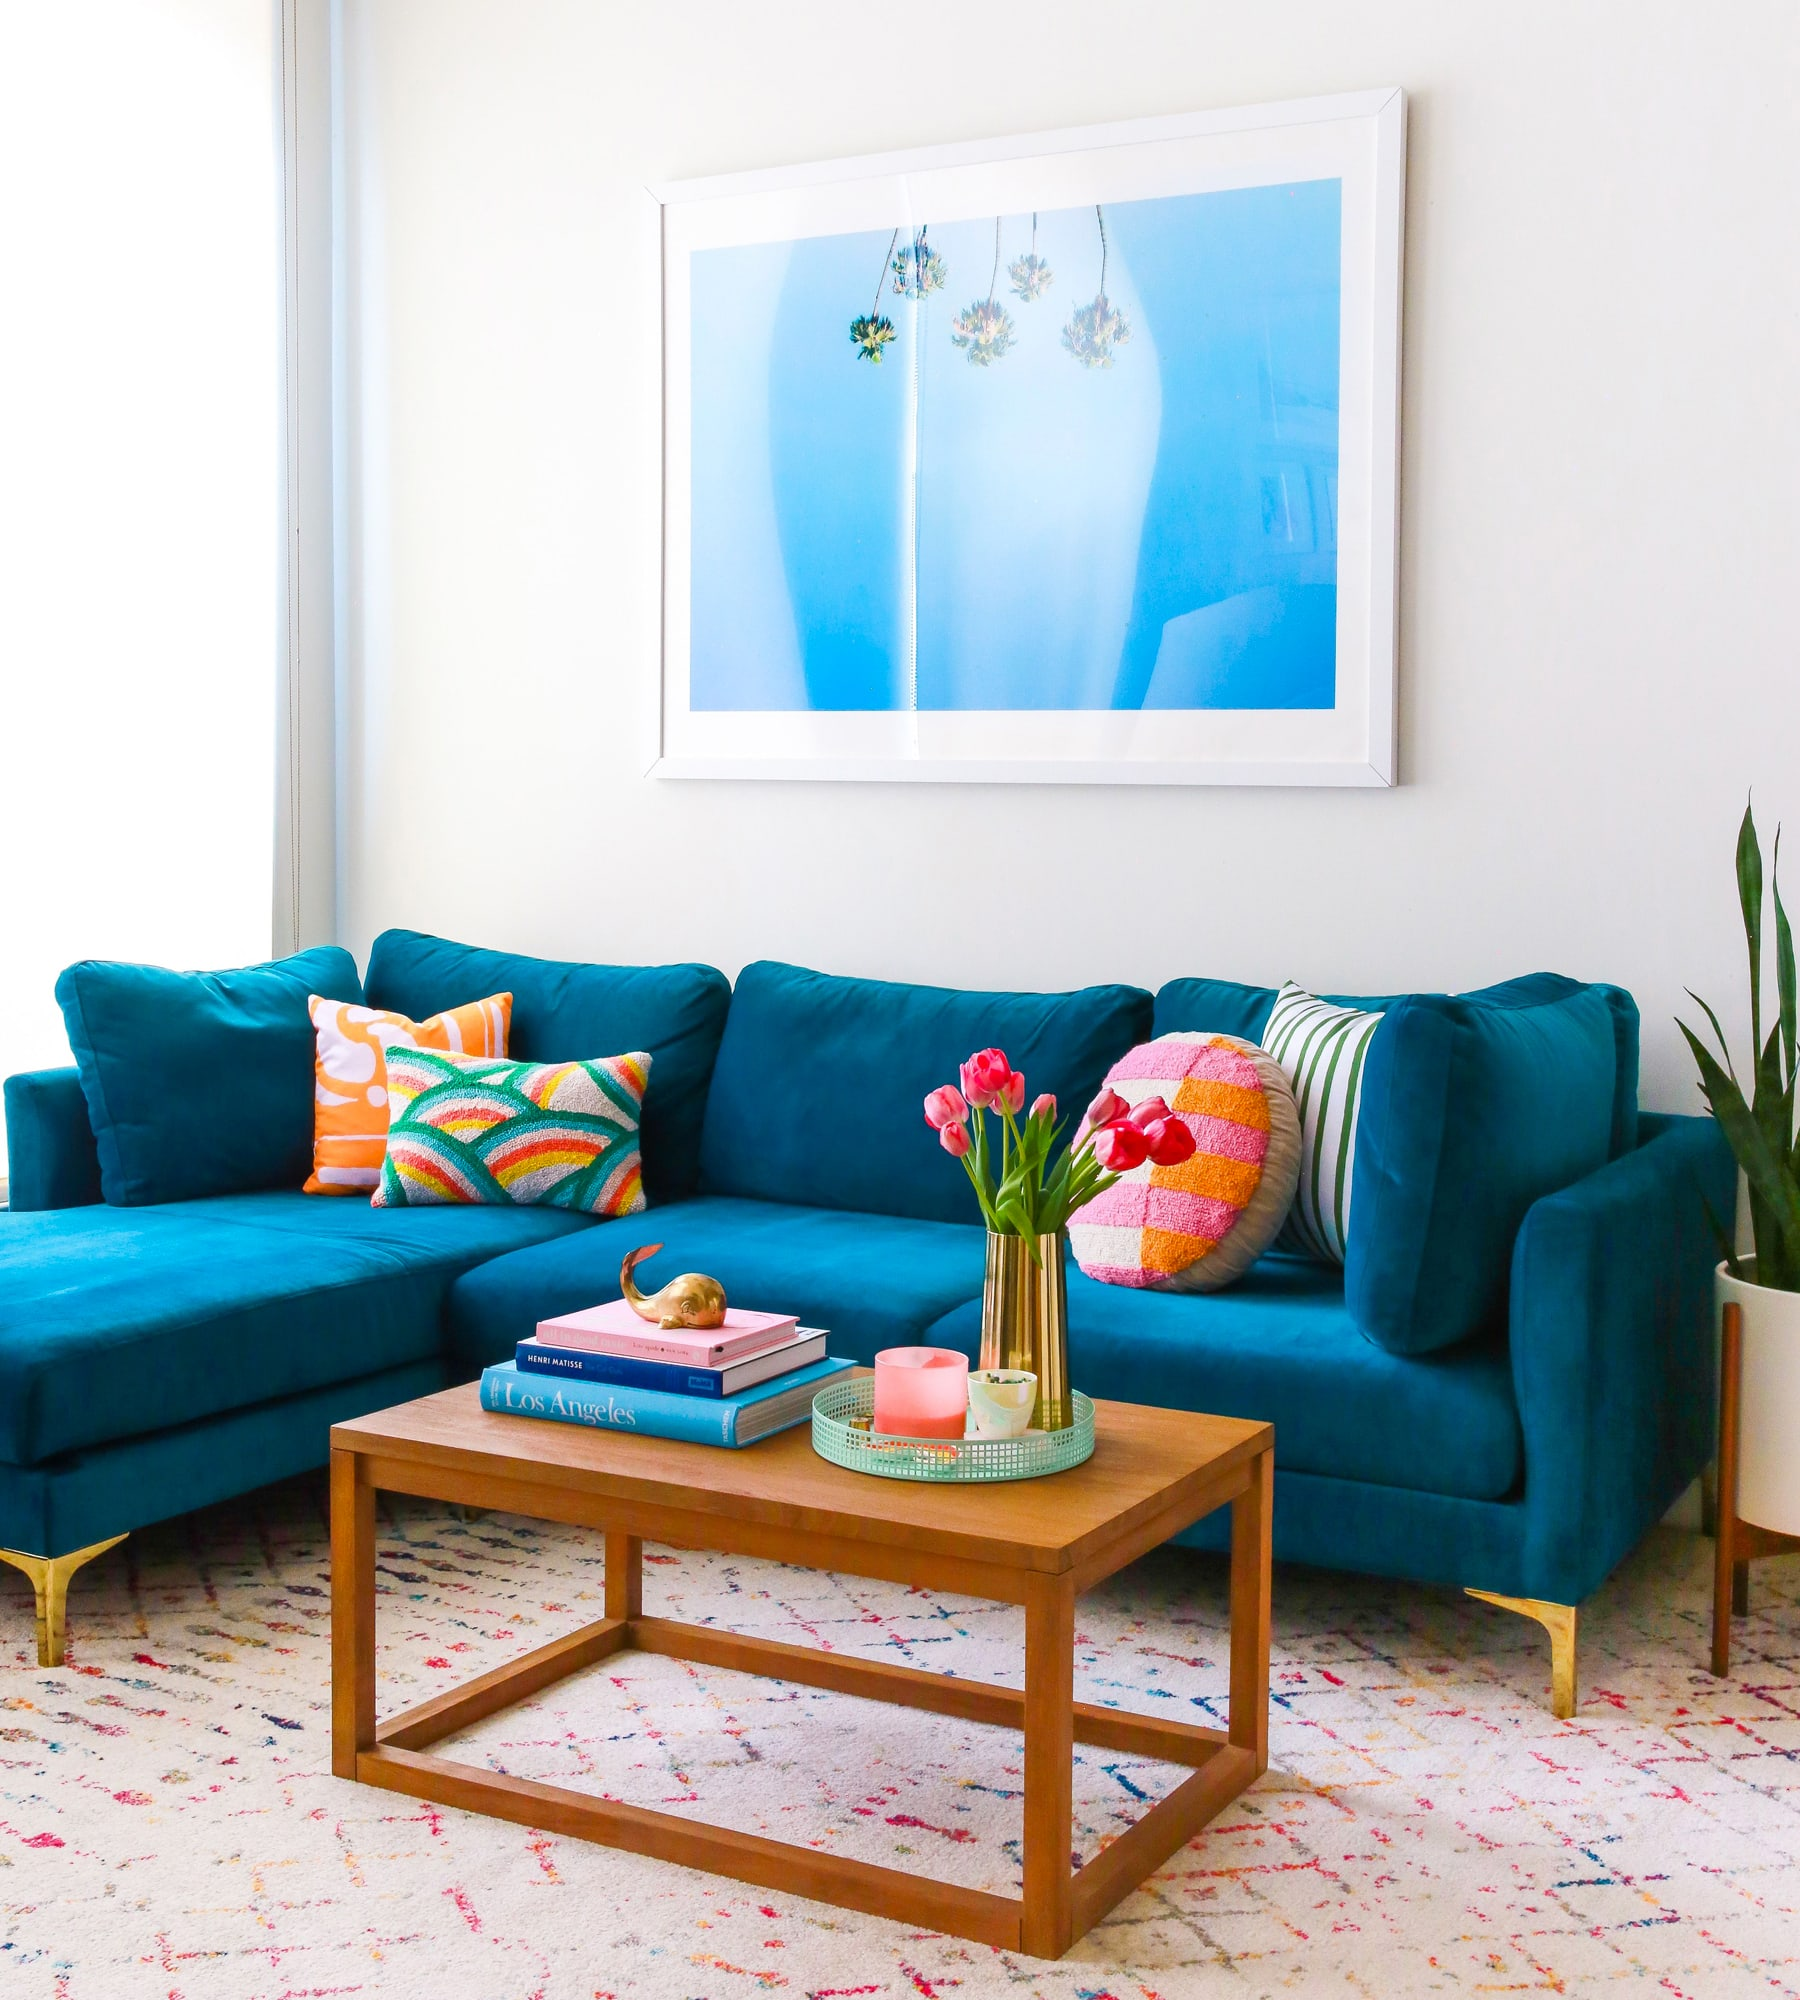 Velvet L-shaped sofa in modern living room with wood coffee table